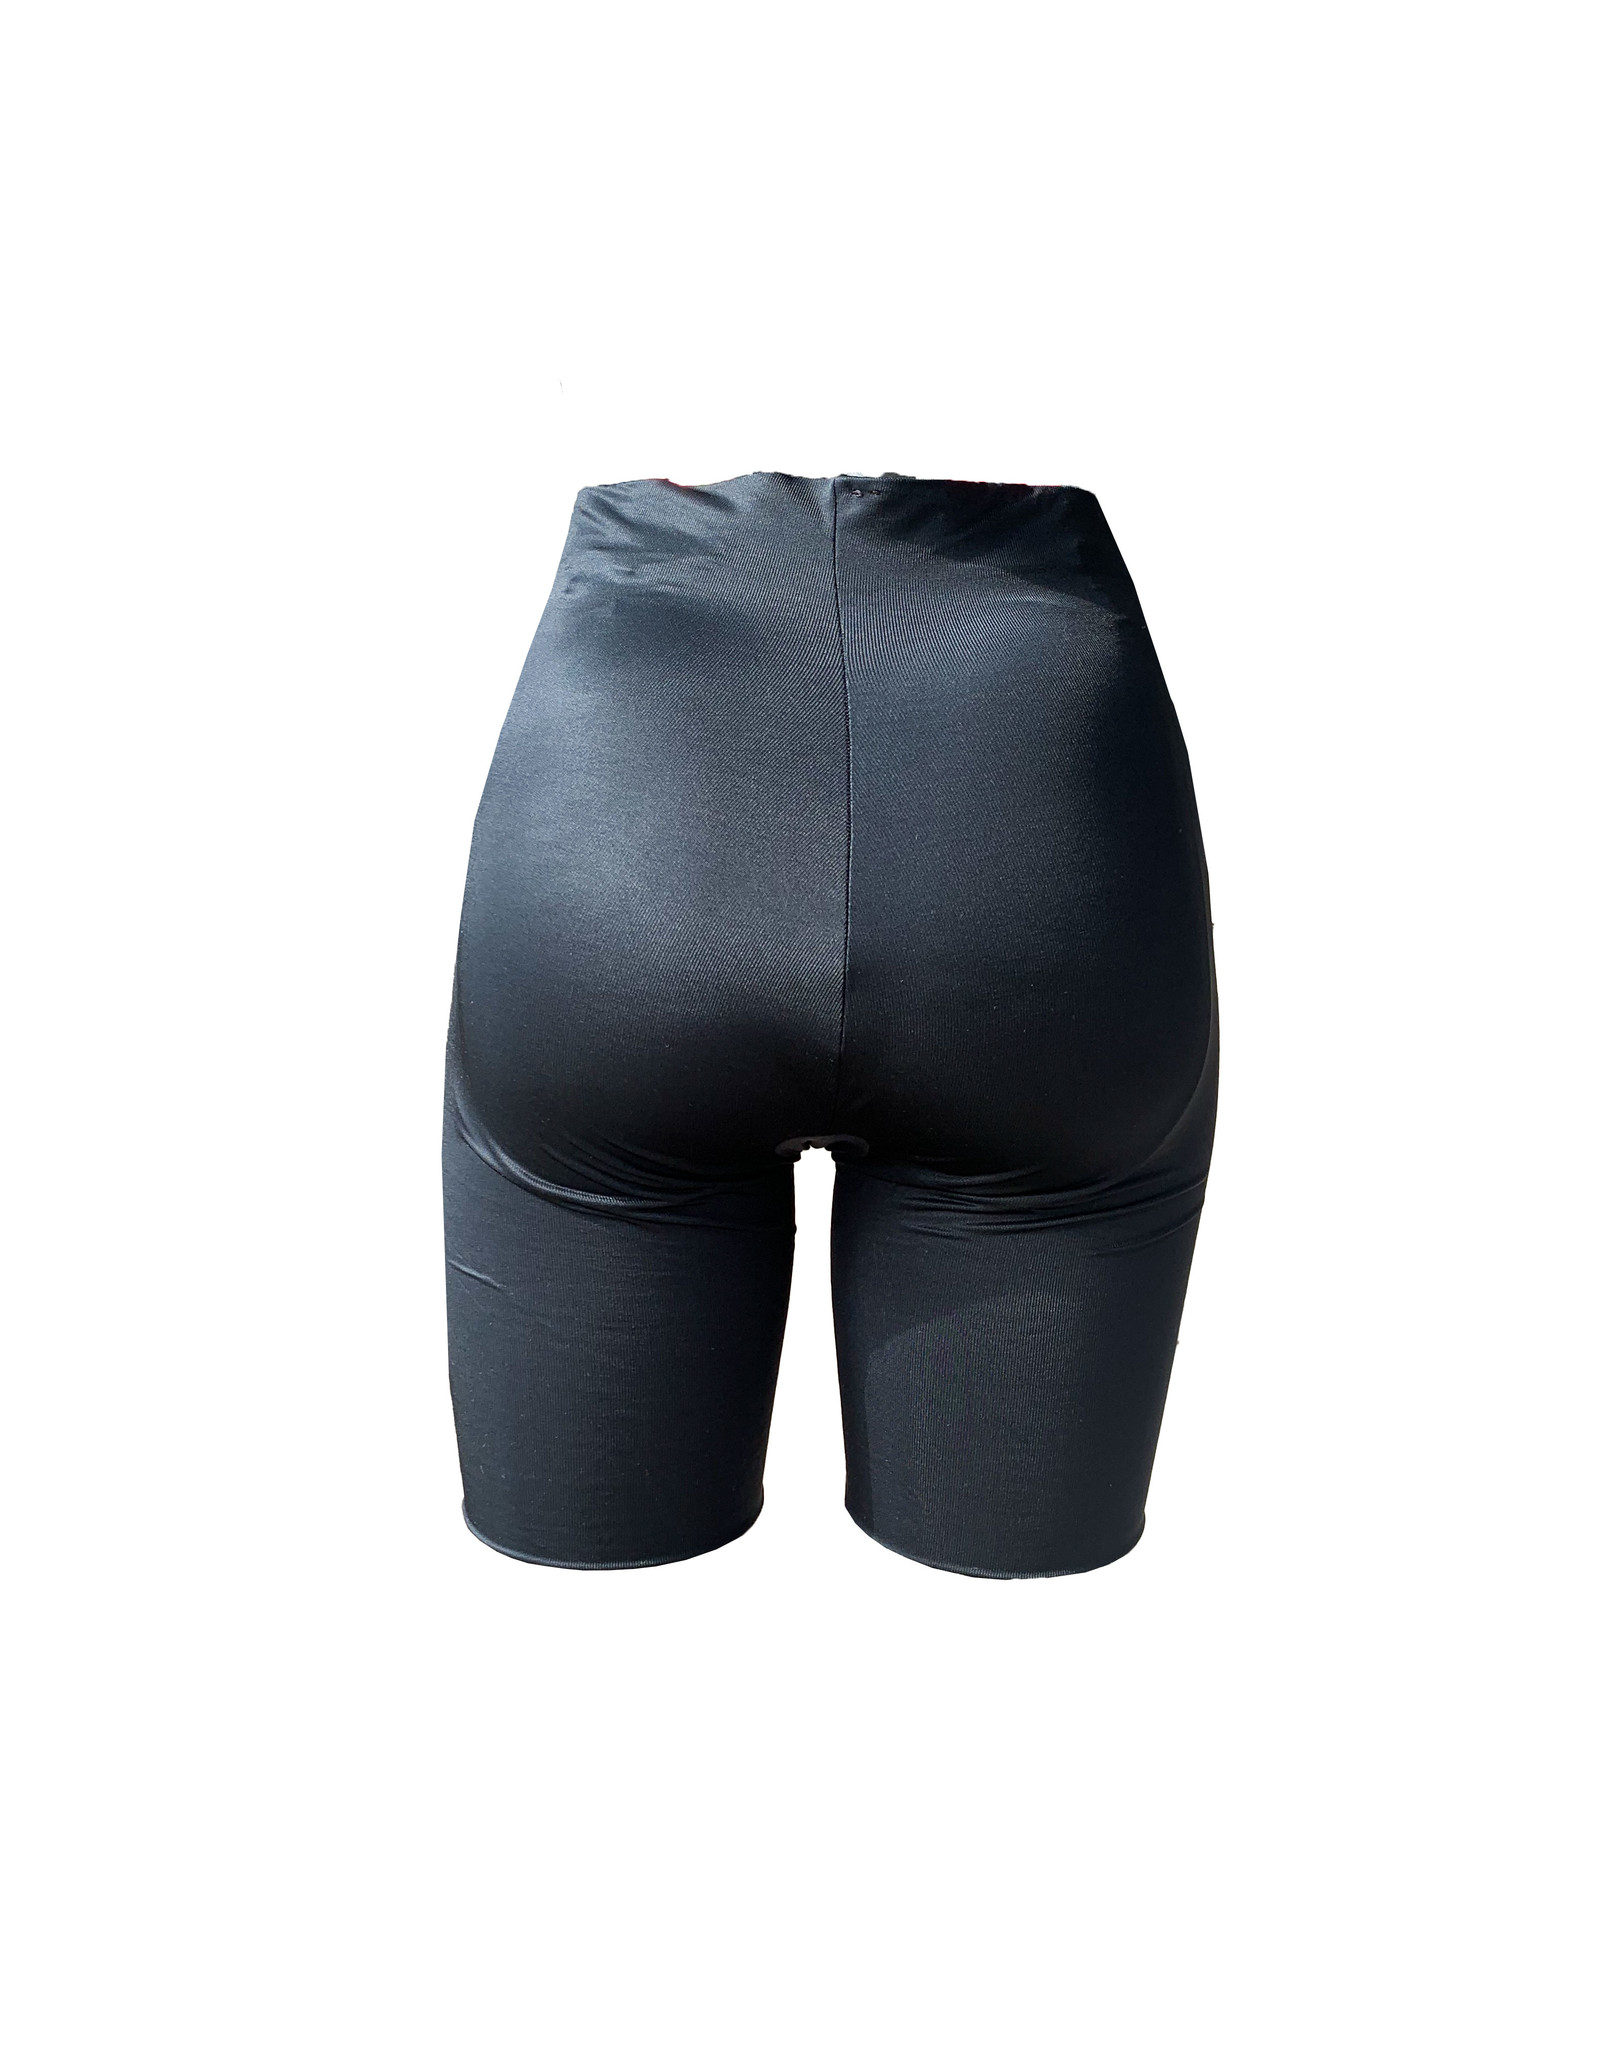 Spanx SPANX  Booty Booster  Shorts  Size M